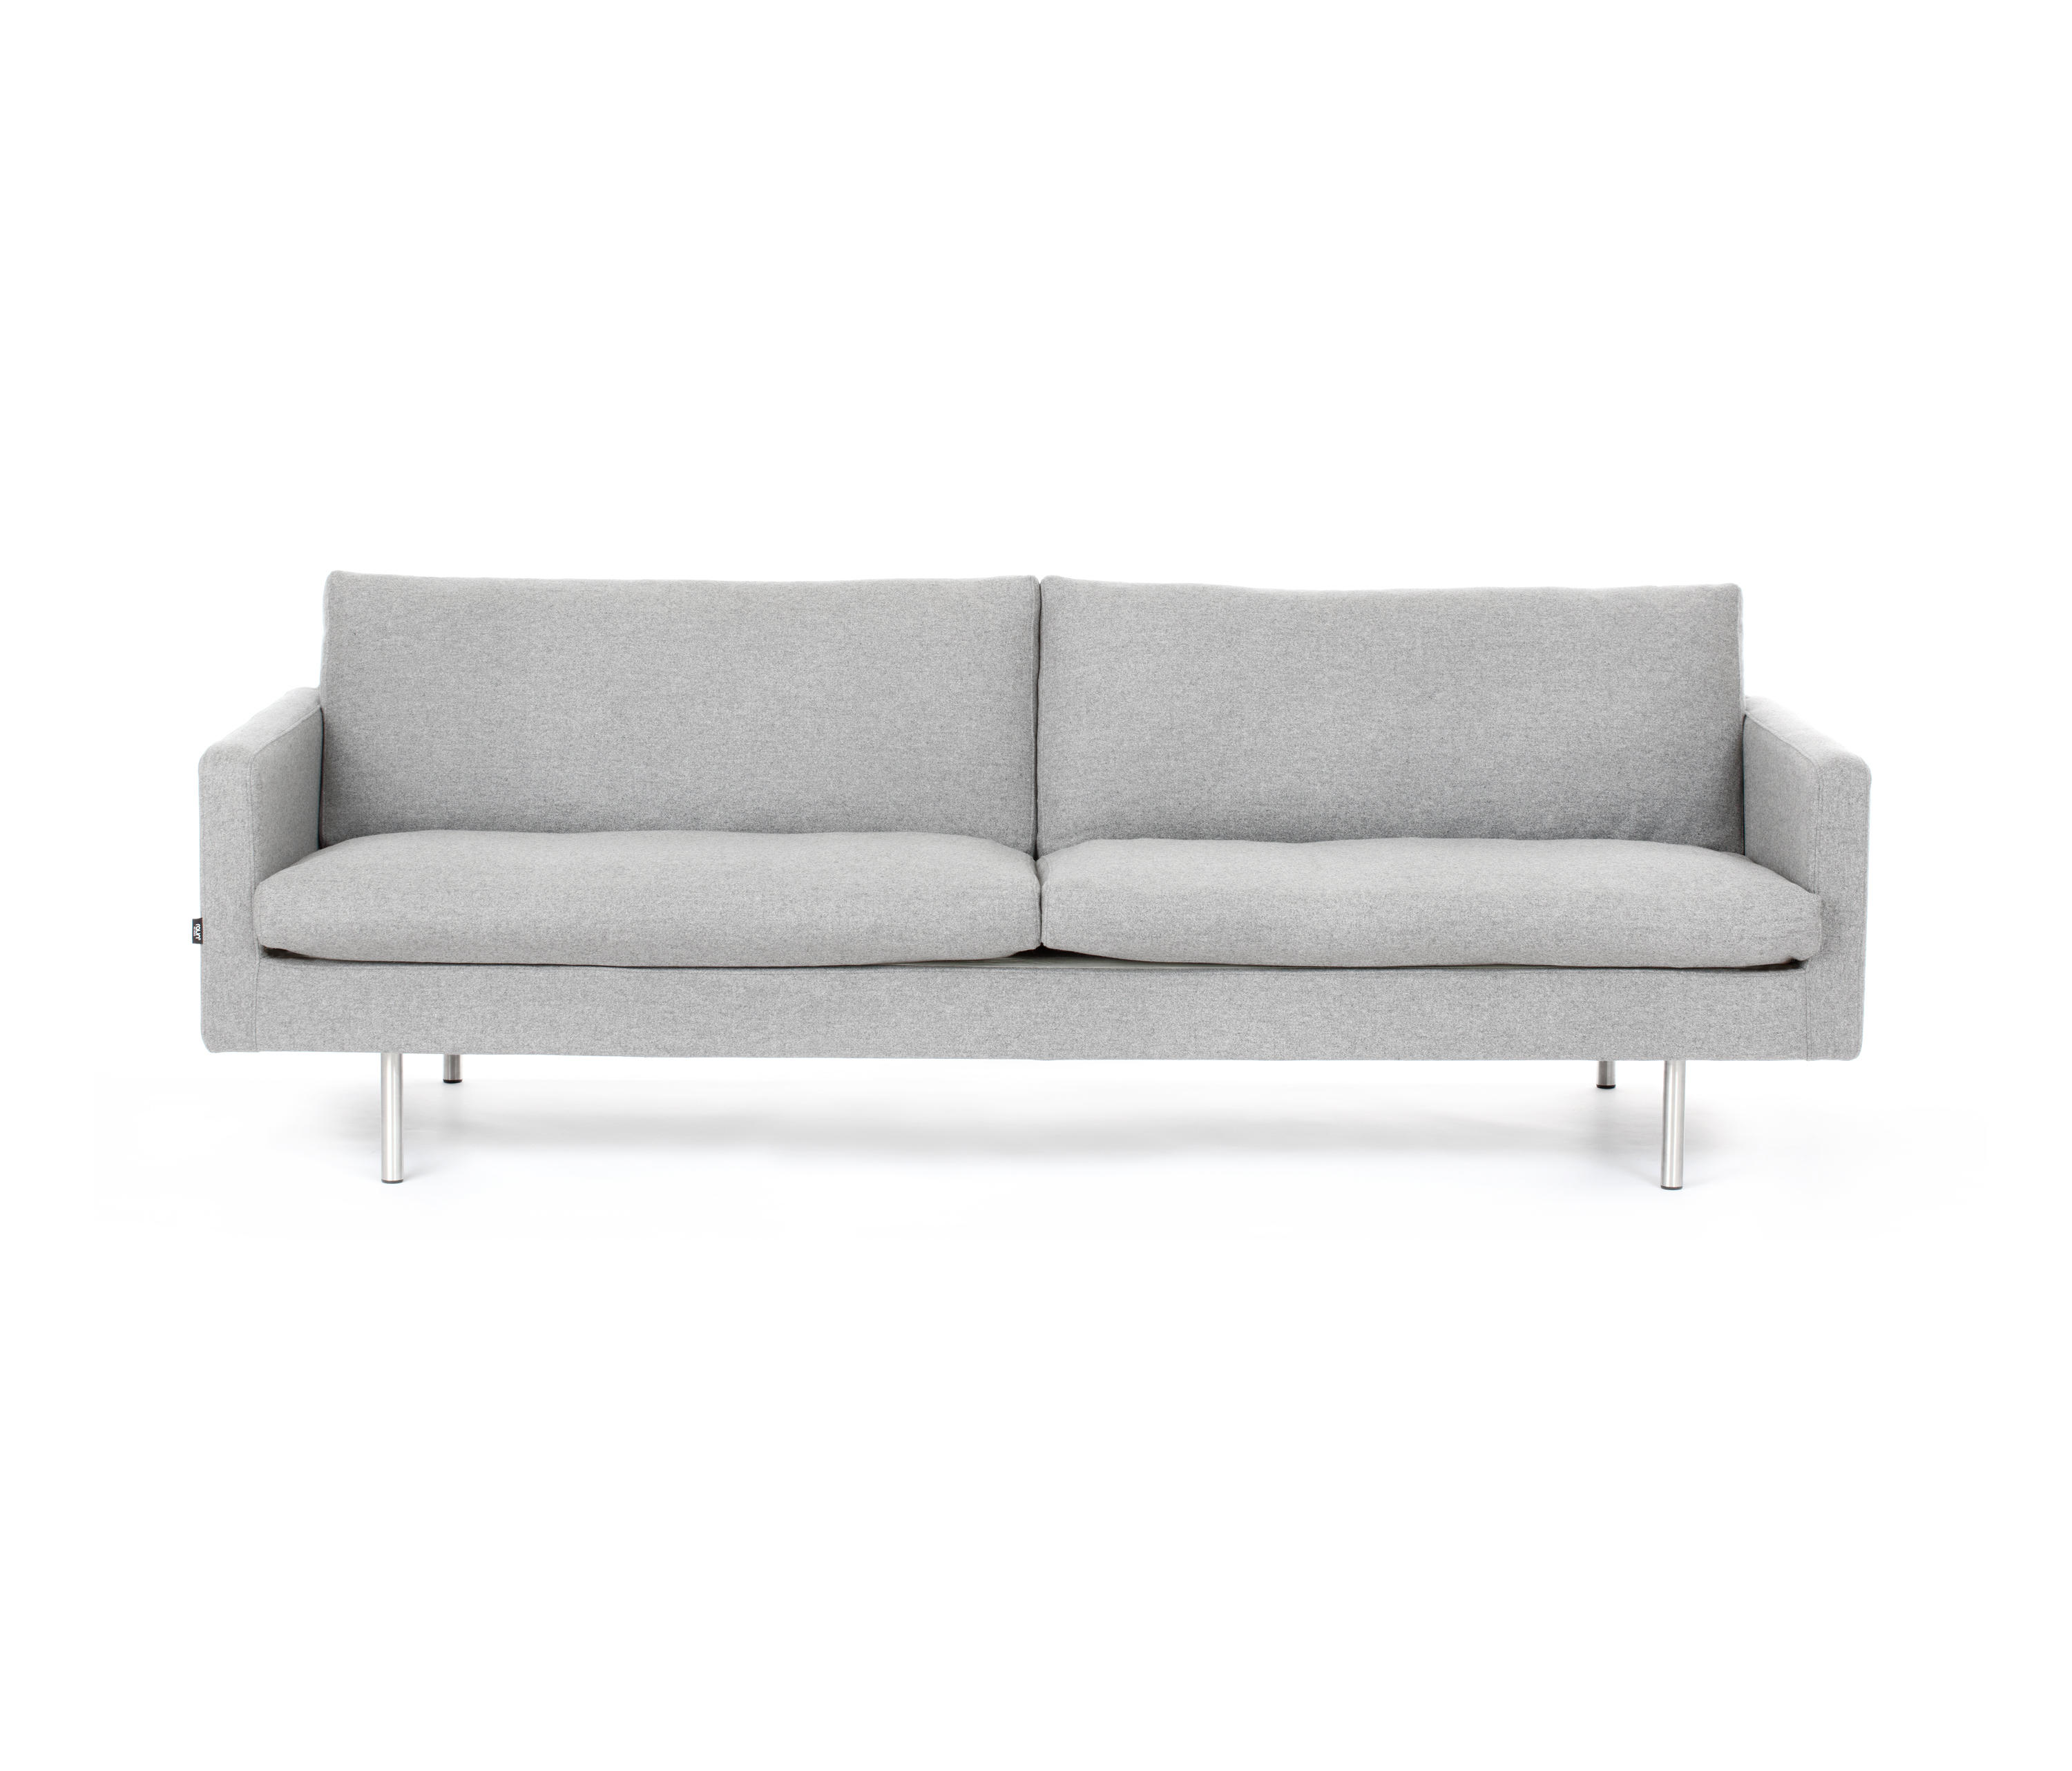 LESS Sofas from Raun Architonic